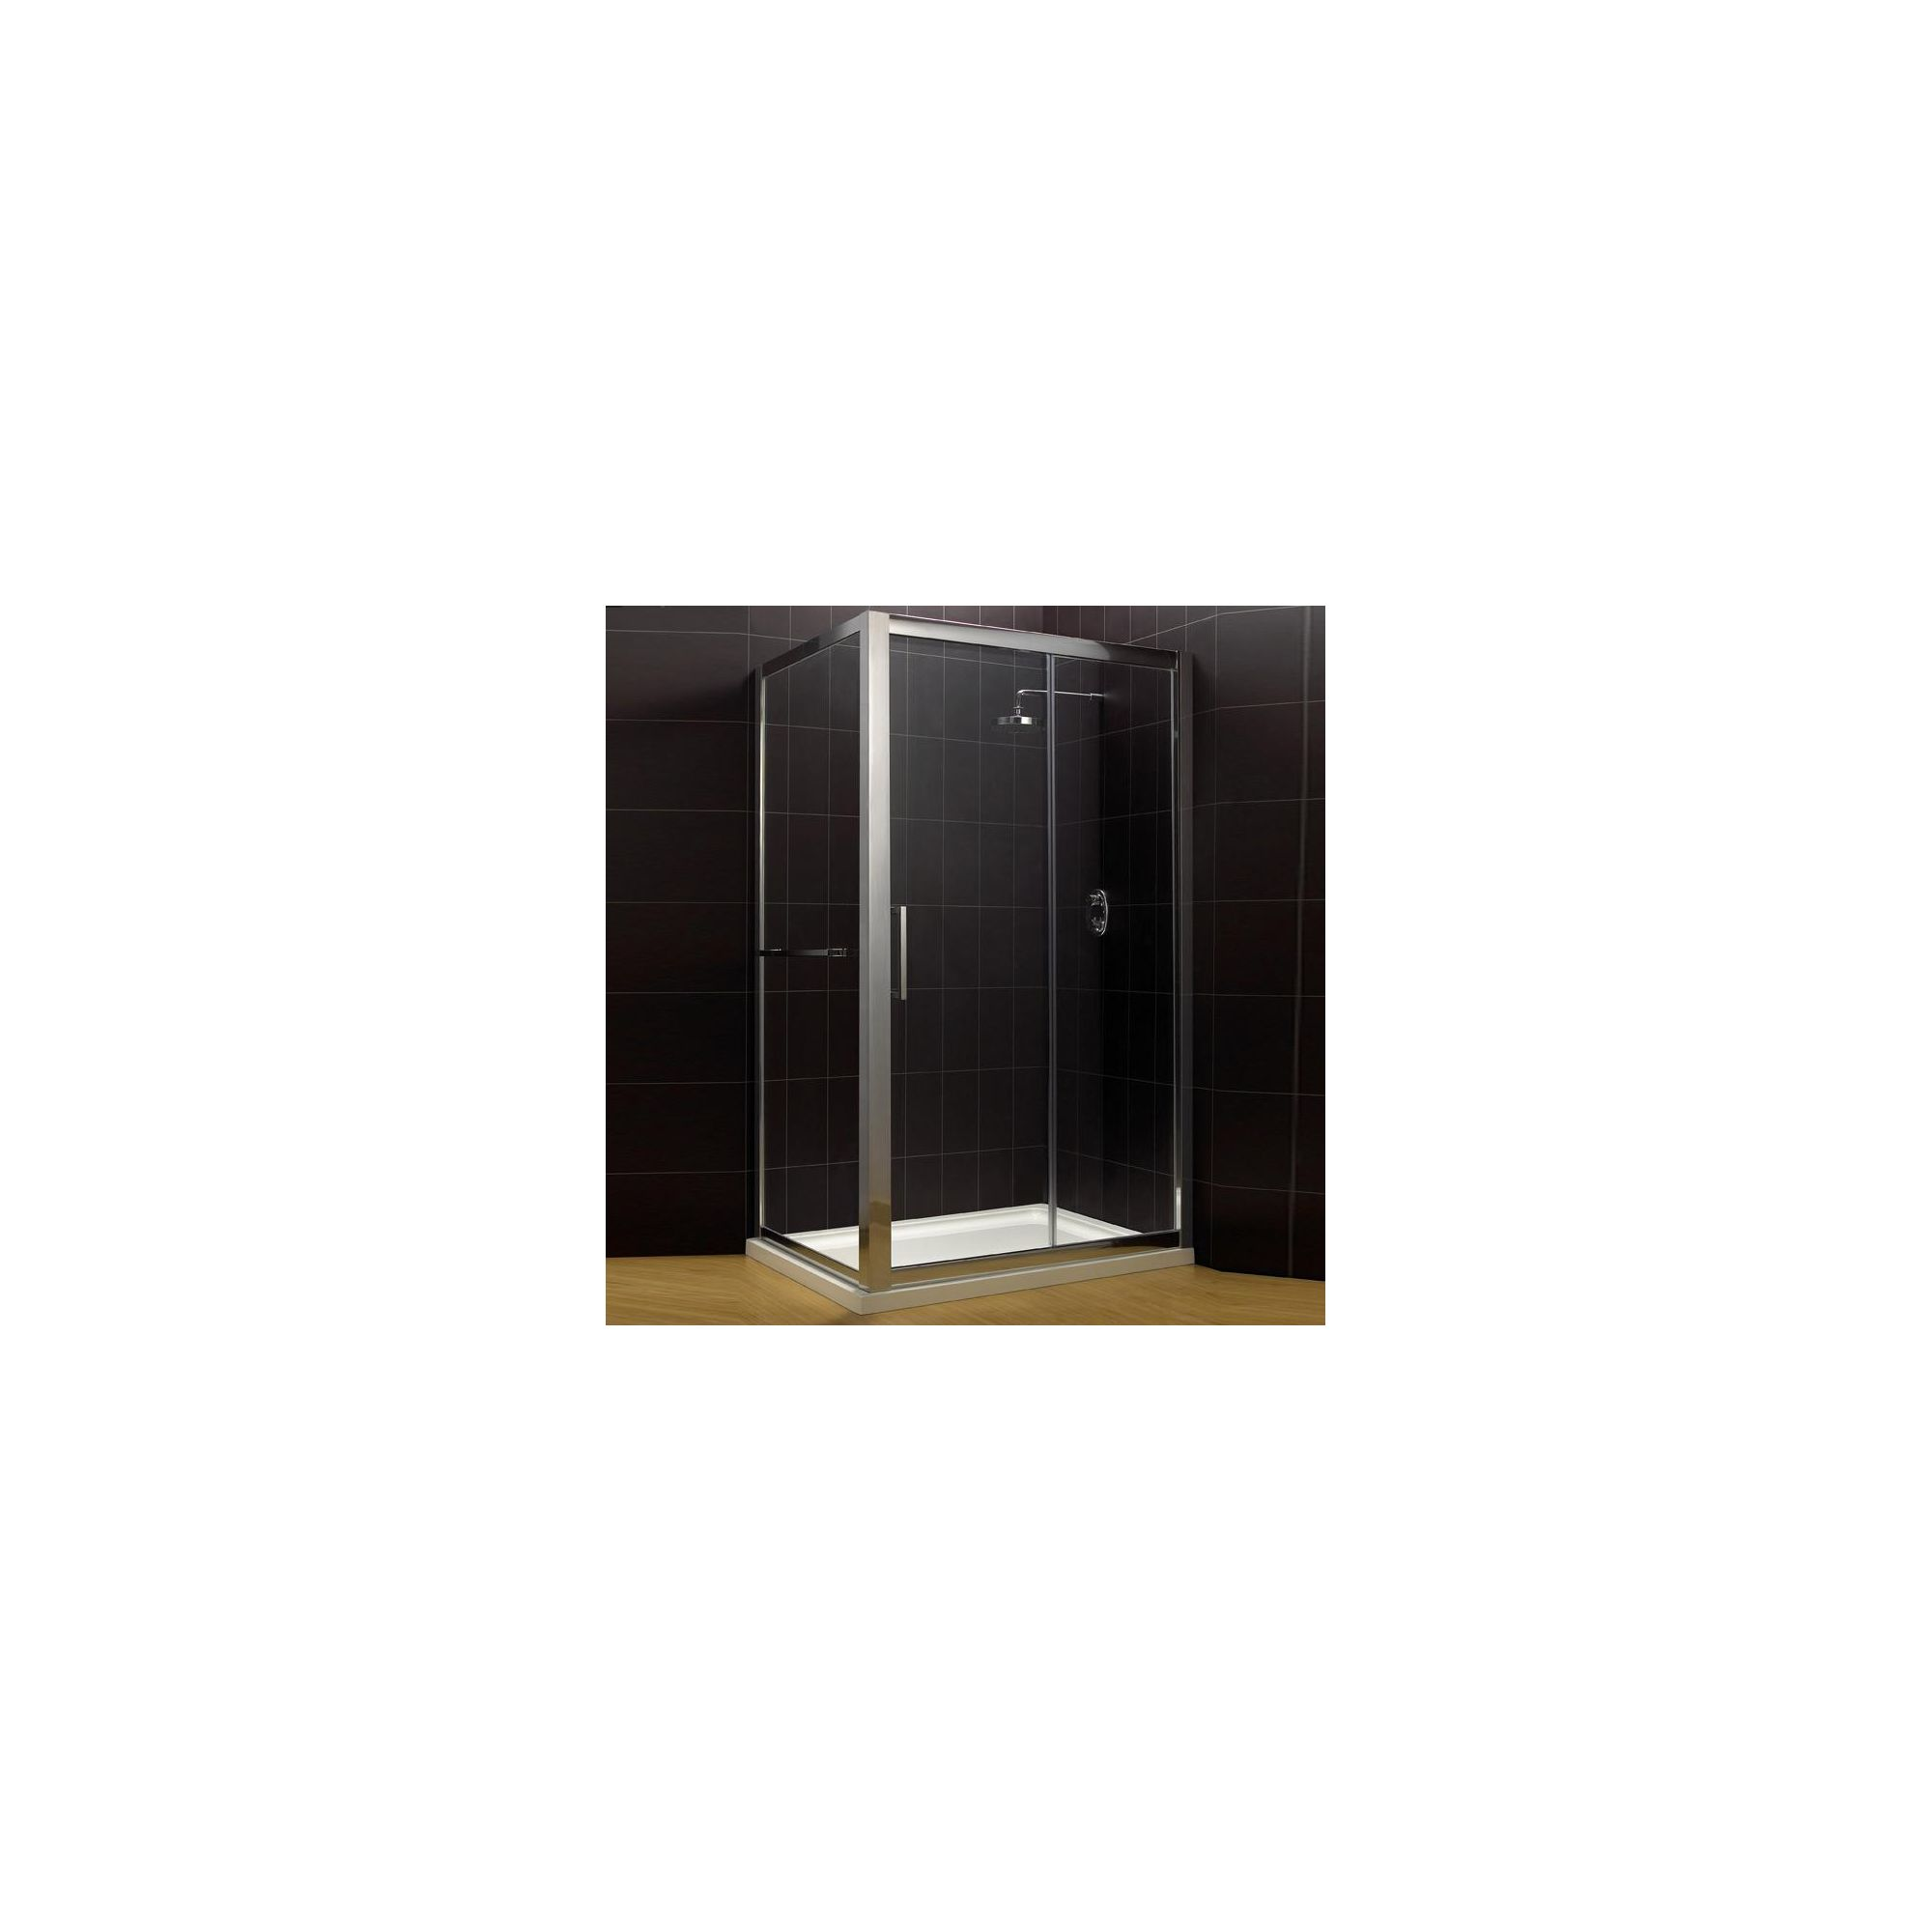 Duchy Supreme Silver Sliding Door Shower Enclosure with Towel Rail, 1400mm x 700mm, Standard Tray, 8mm Glass at Tesco Direct